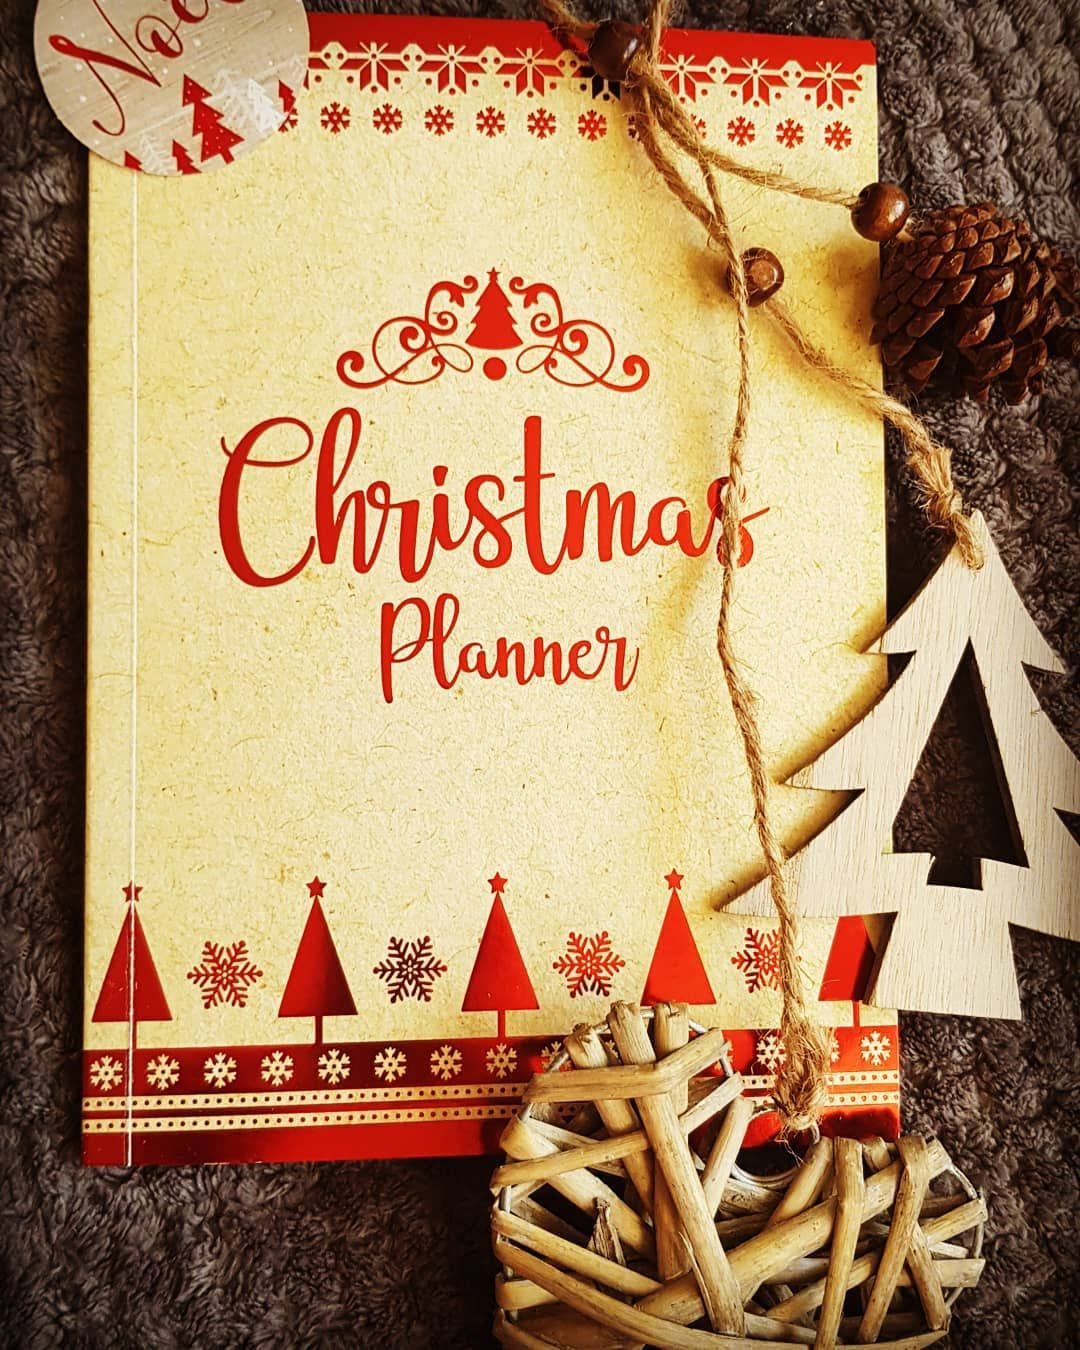 Feeling Festive This Morning Wrapping The First Pressies Ive Bought This Year And Attempting Some Christ Christmas Planner Christmas Crafts Feeling Festive